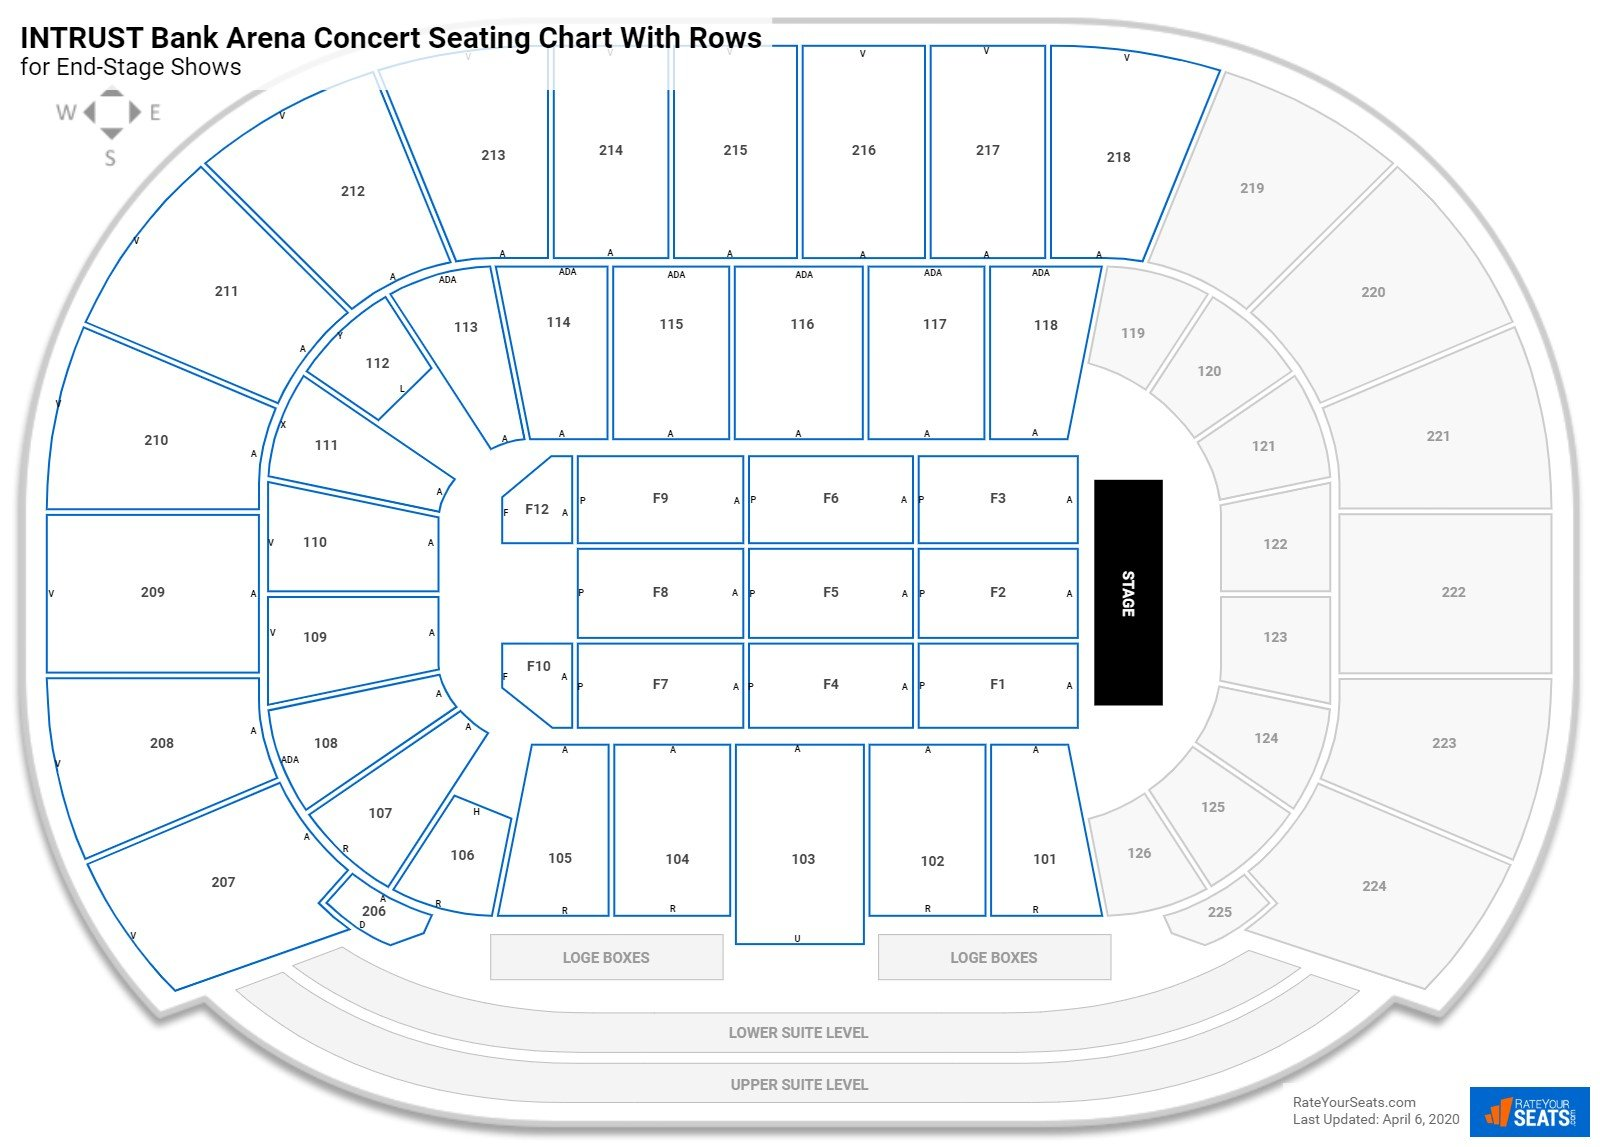 INTRUST Bank Arena seating chart with rows concert